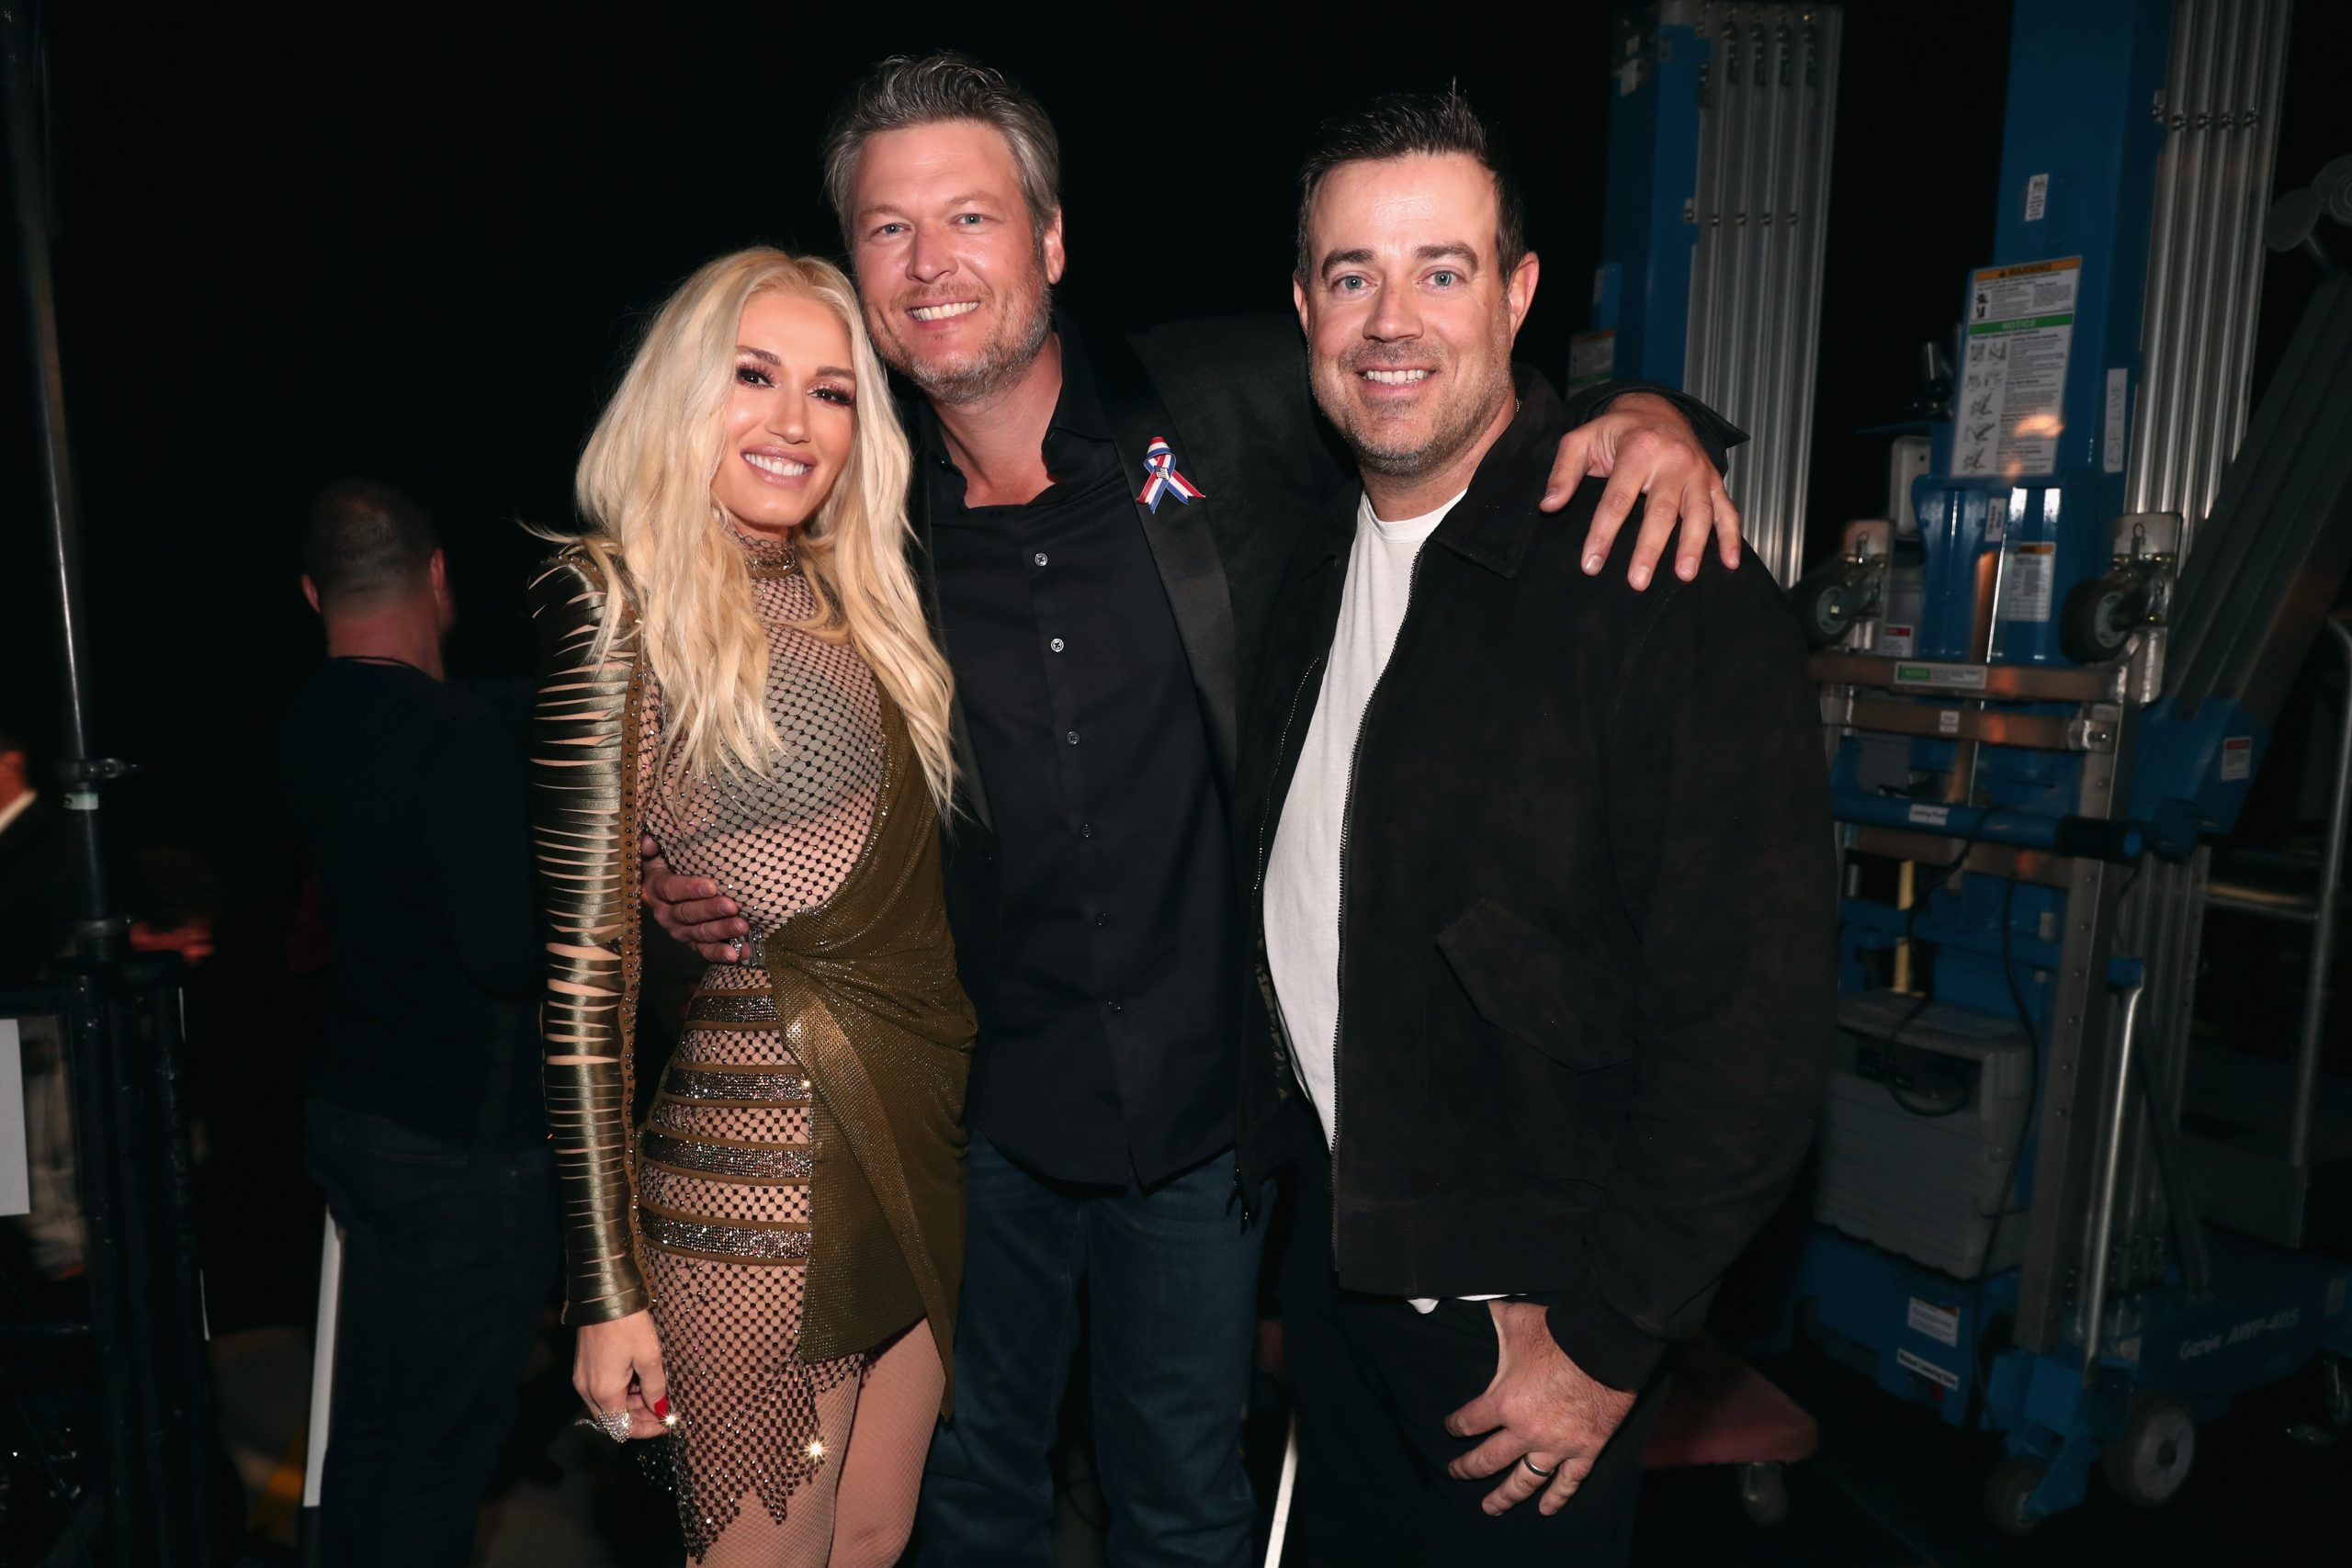 Gwen Stefani, Blake Shelton, and Carson Daly at the People's Choice Awards in 2018